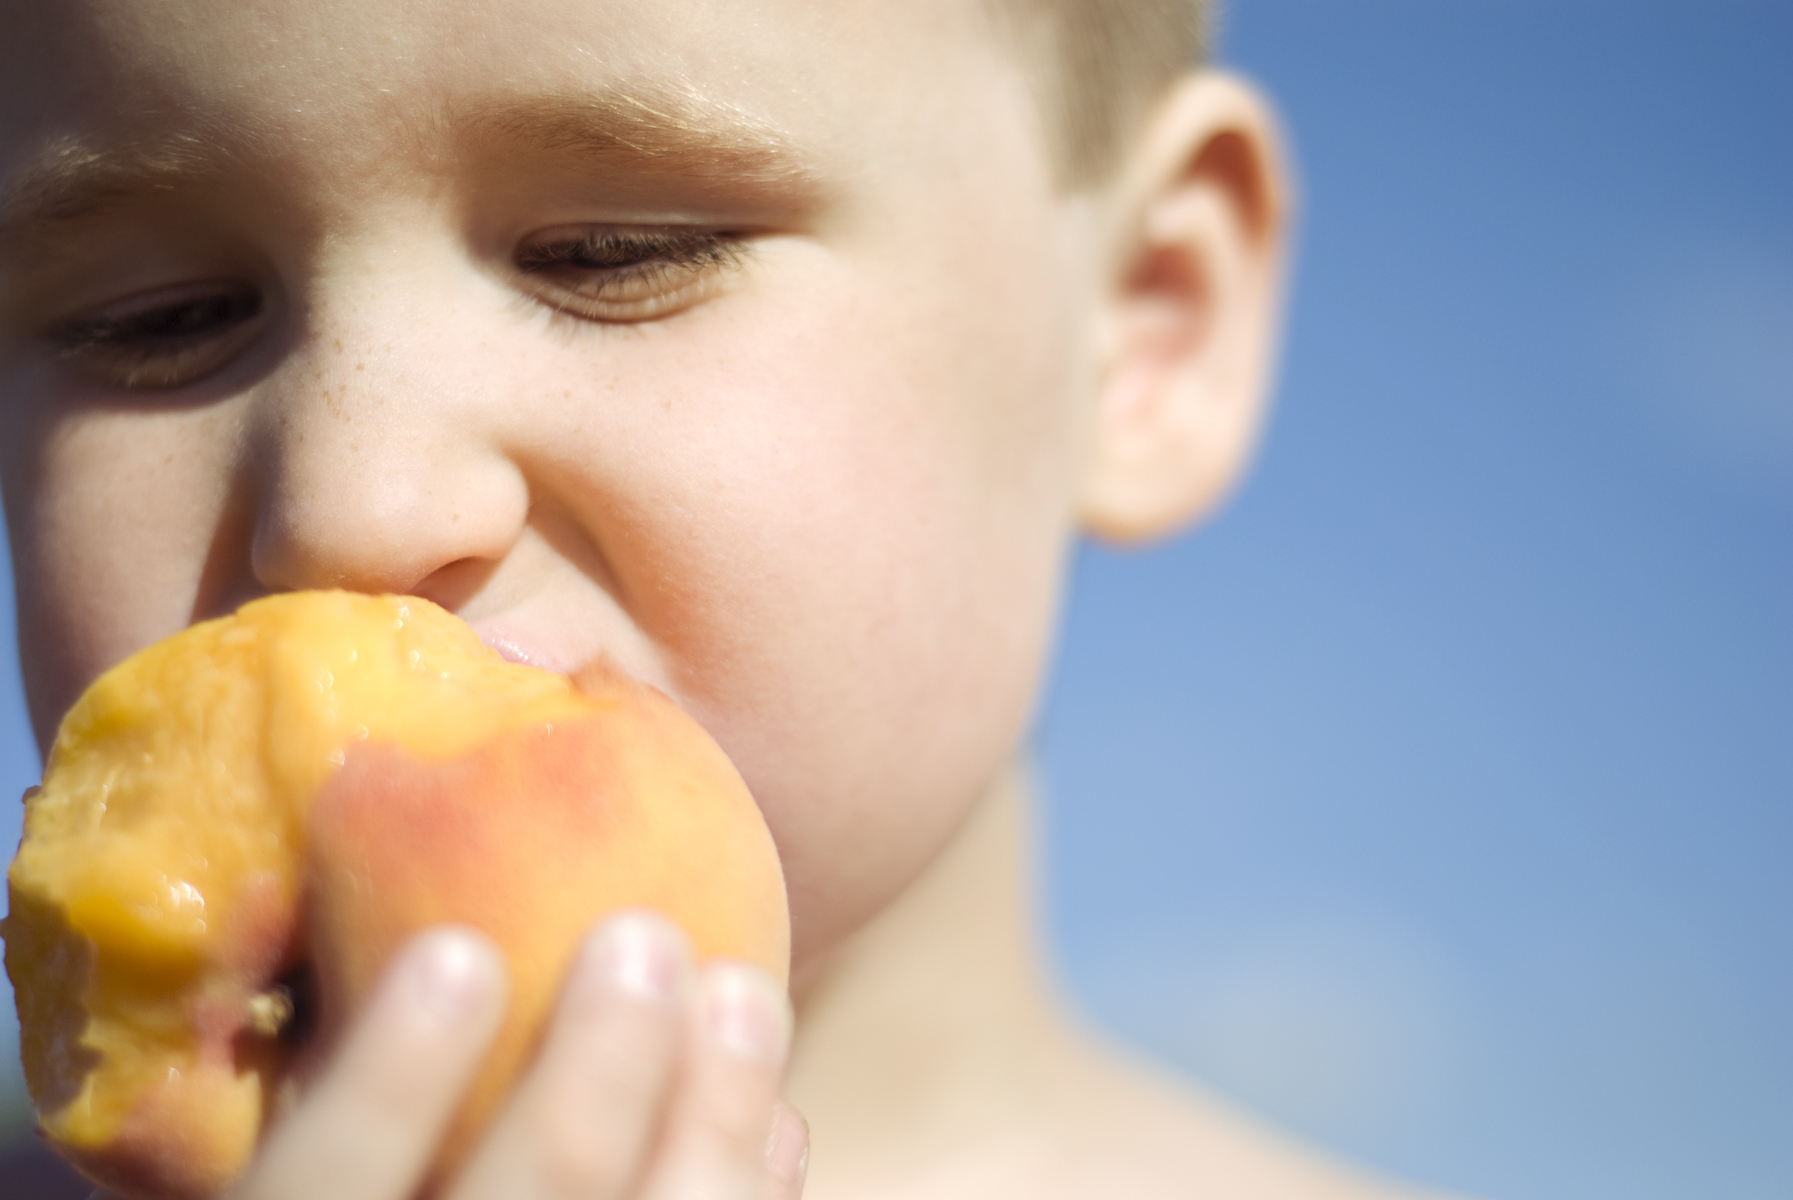 Boy biting into peach with blue sky in the background